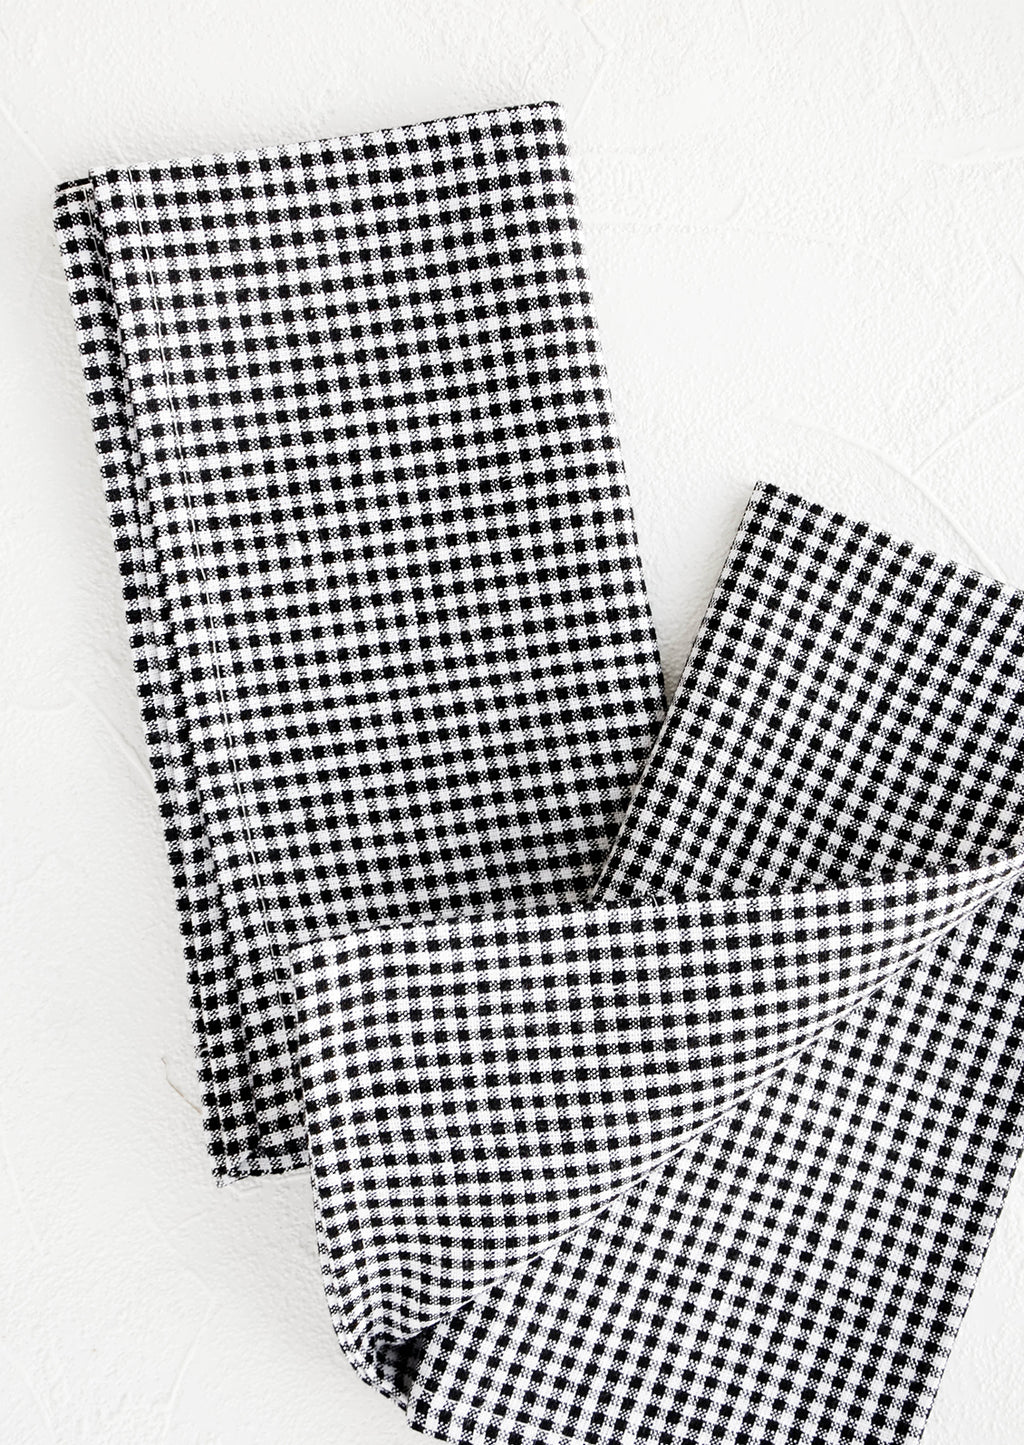 4: Pair of fabric dinner napkins in black and white gingham pattern